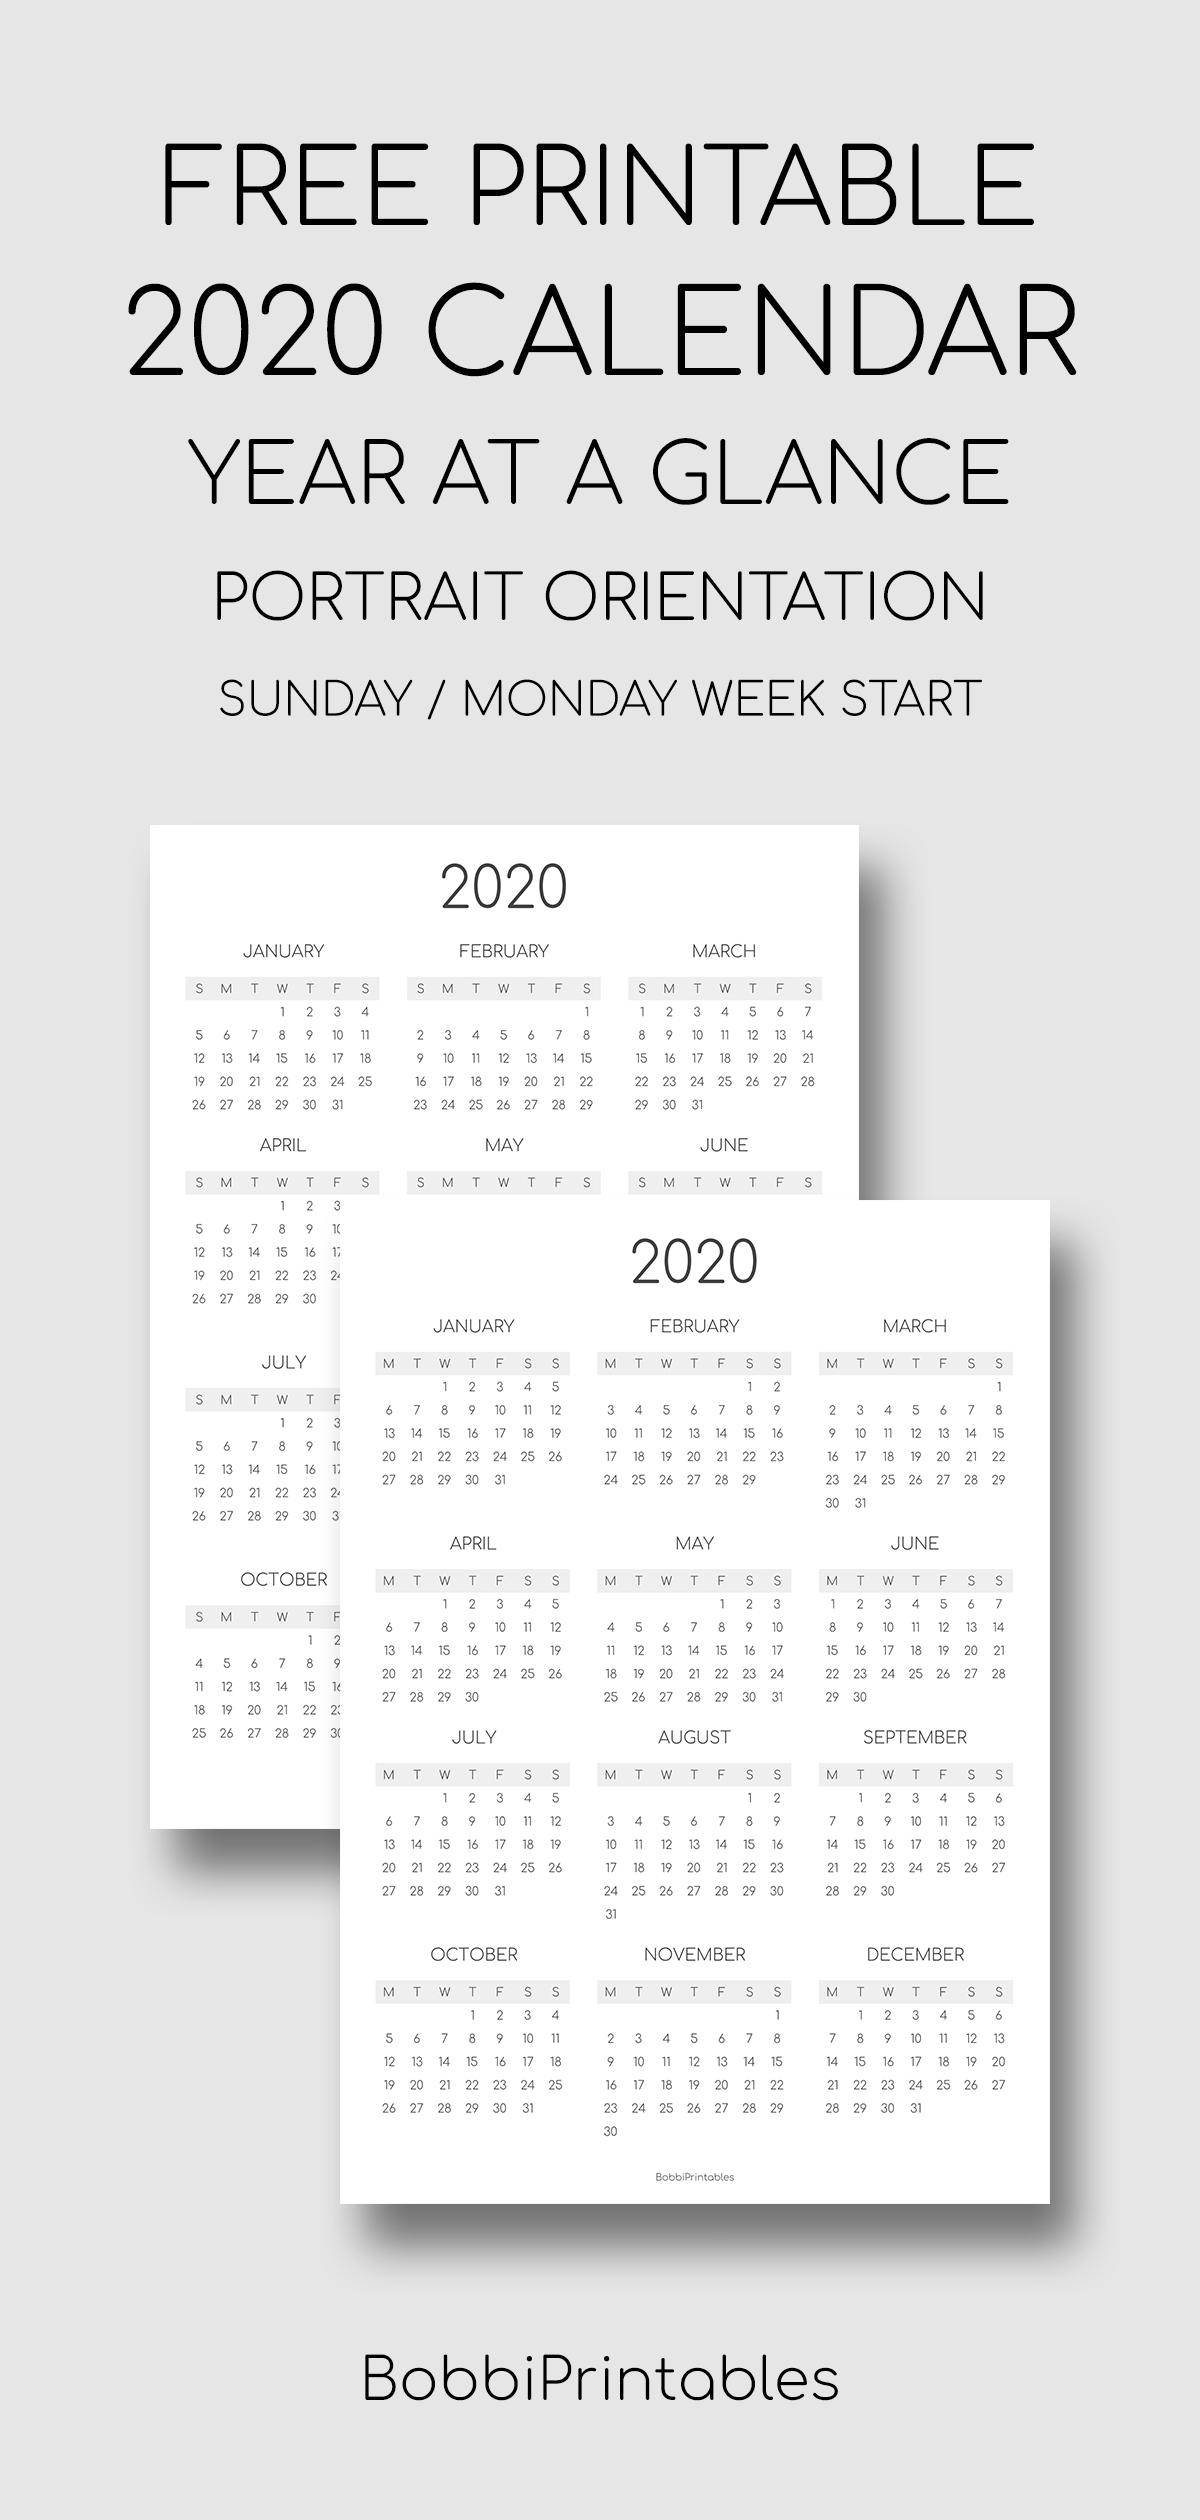 Printable 2020 Year At A Glance Calendar - Portrait regarding Printable Template For Blank 2020 Year At A Glance Calendar